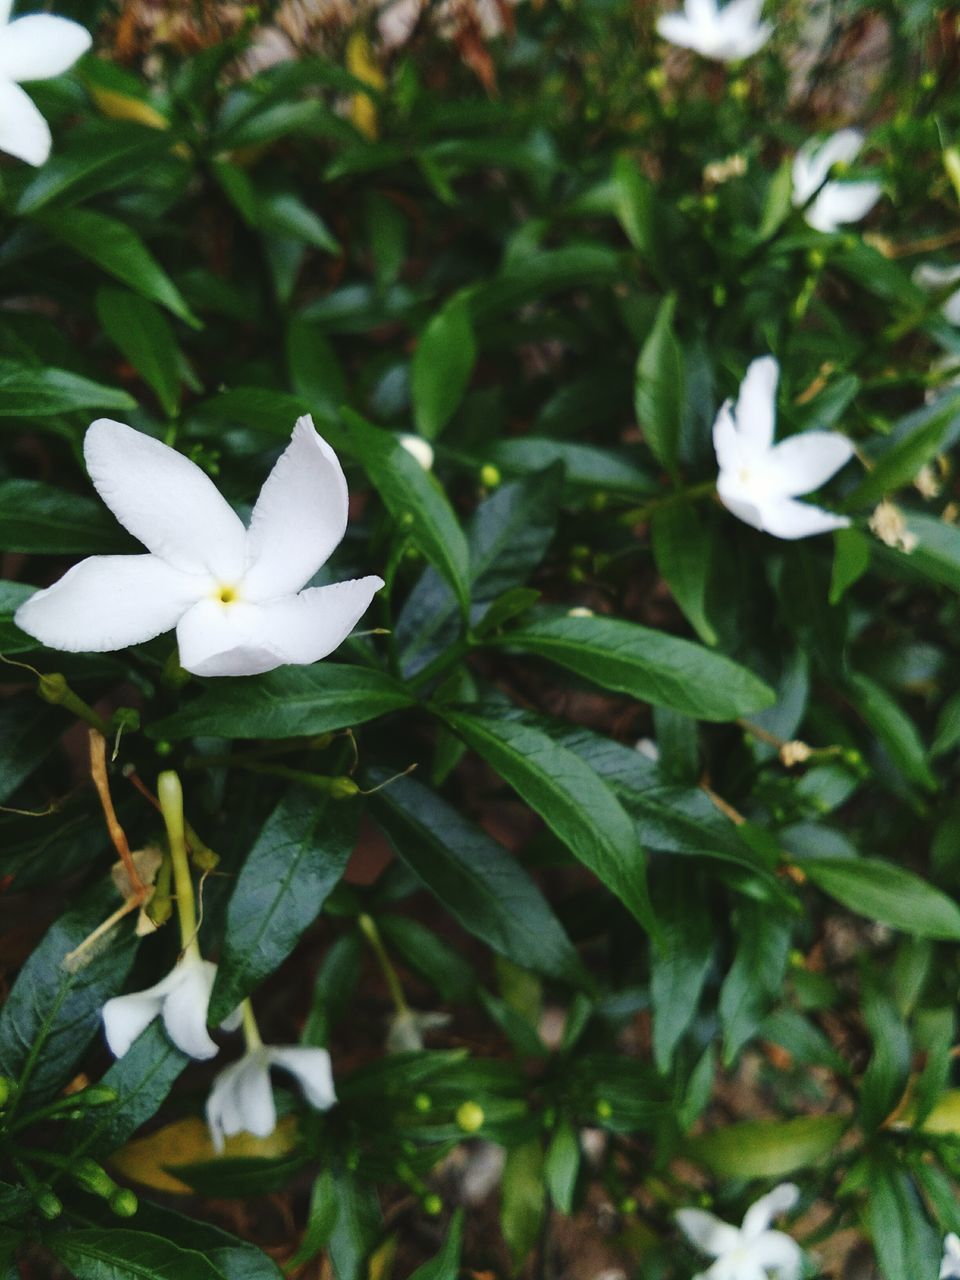 flower, petal, green color, beauty in nature, white color, growth, nature, freshness, fragility, leaf, flower head, close-up, plant, no people, day, blooming, outdoors, periwinkle, frangipani